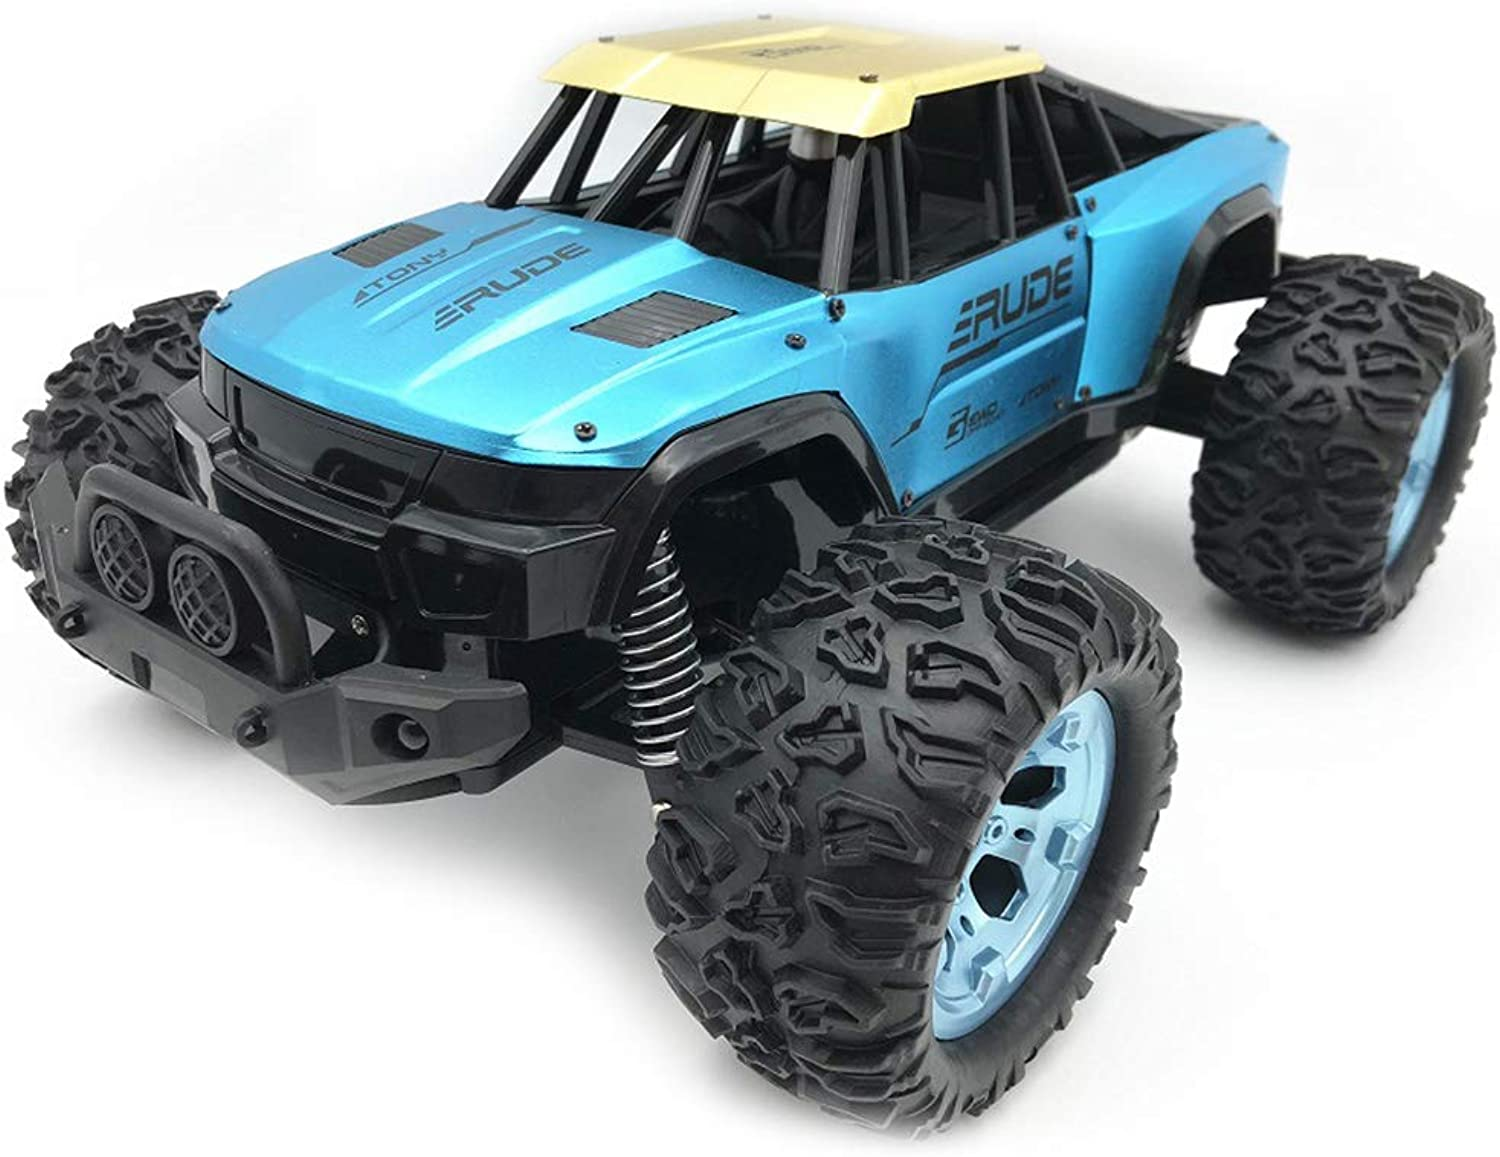 Generic Jule UJ992211B 1 12 High Speed OffRoad RC Car Alloy Remote Control RC Vehicle Toy Remote Control Car Toys for Kids Gift Toy Dodger bluee